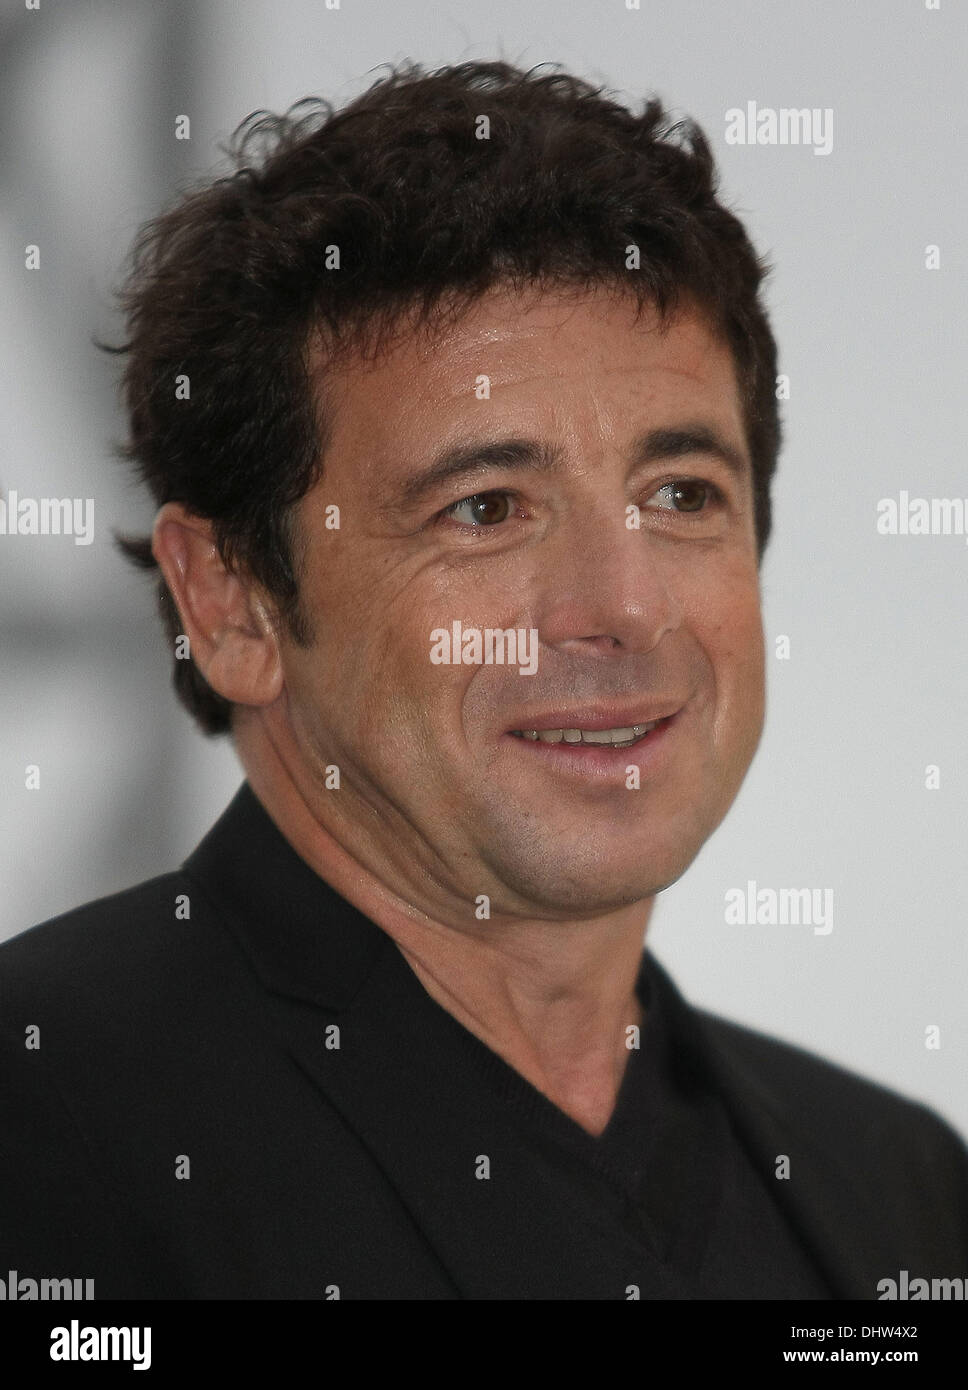 Patrick Bruel Celebrities outside the Martinez hotel during the 65th annual  Cannes Film Festival Cannes, France - 25.05.12